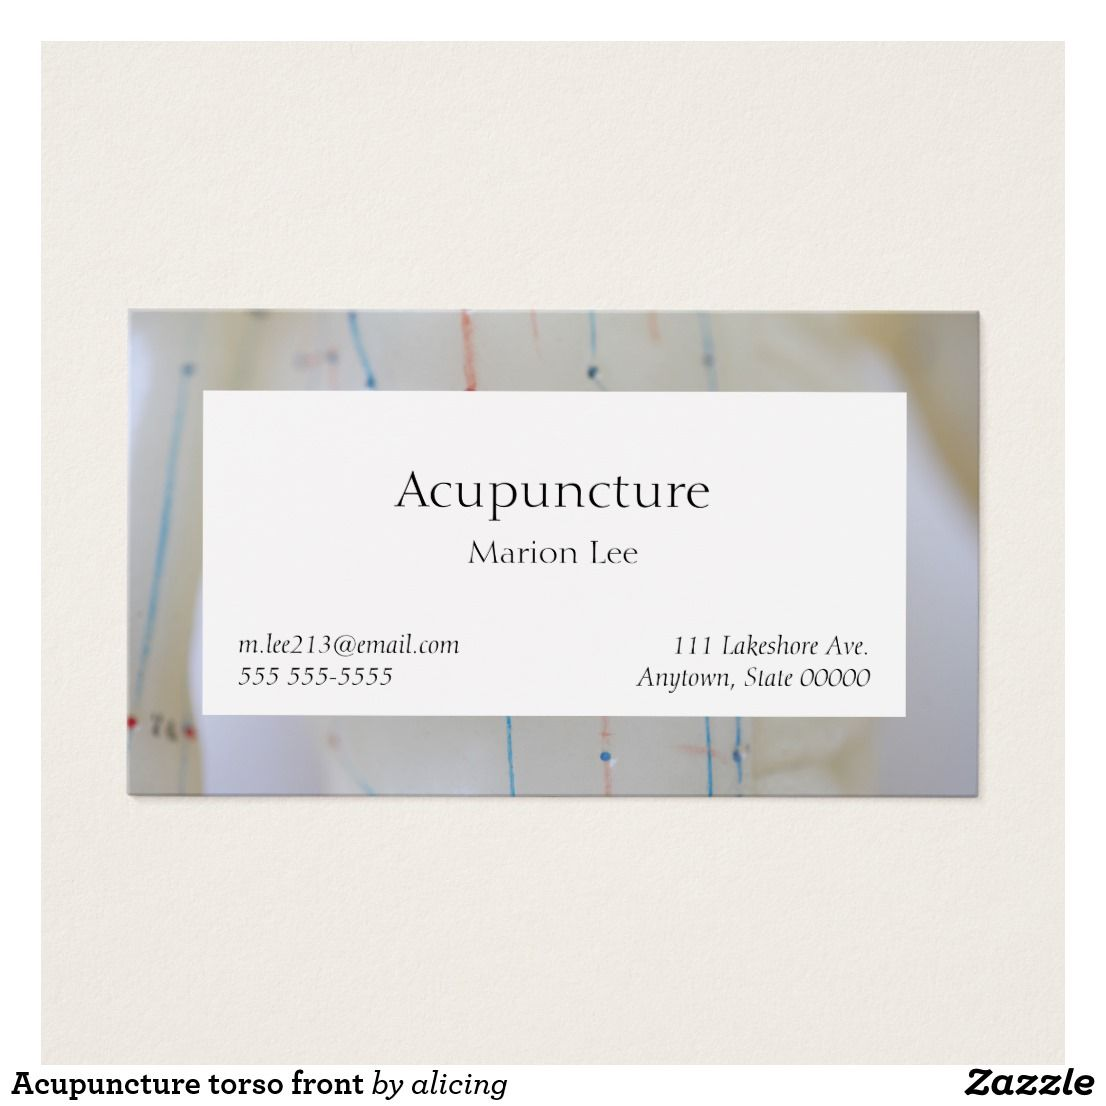 Acupuncture torso front | Business Cards - stylish, yet all business ...